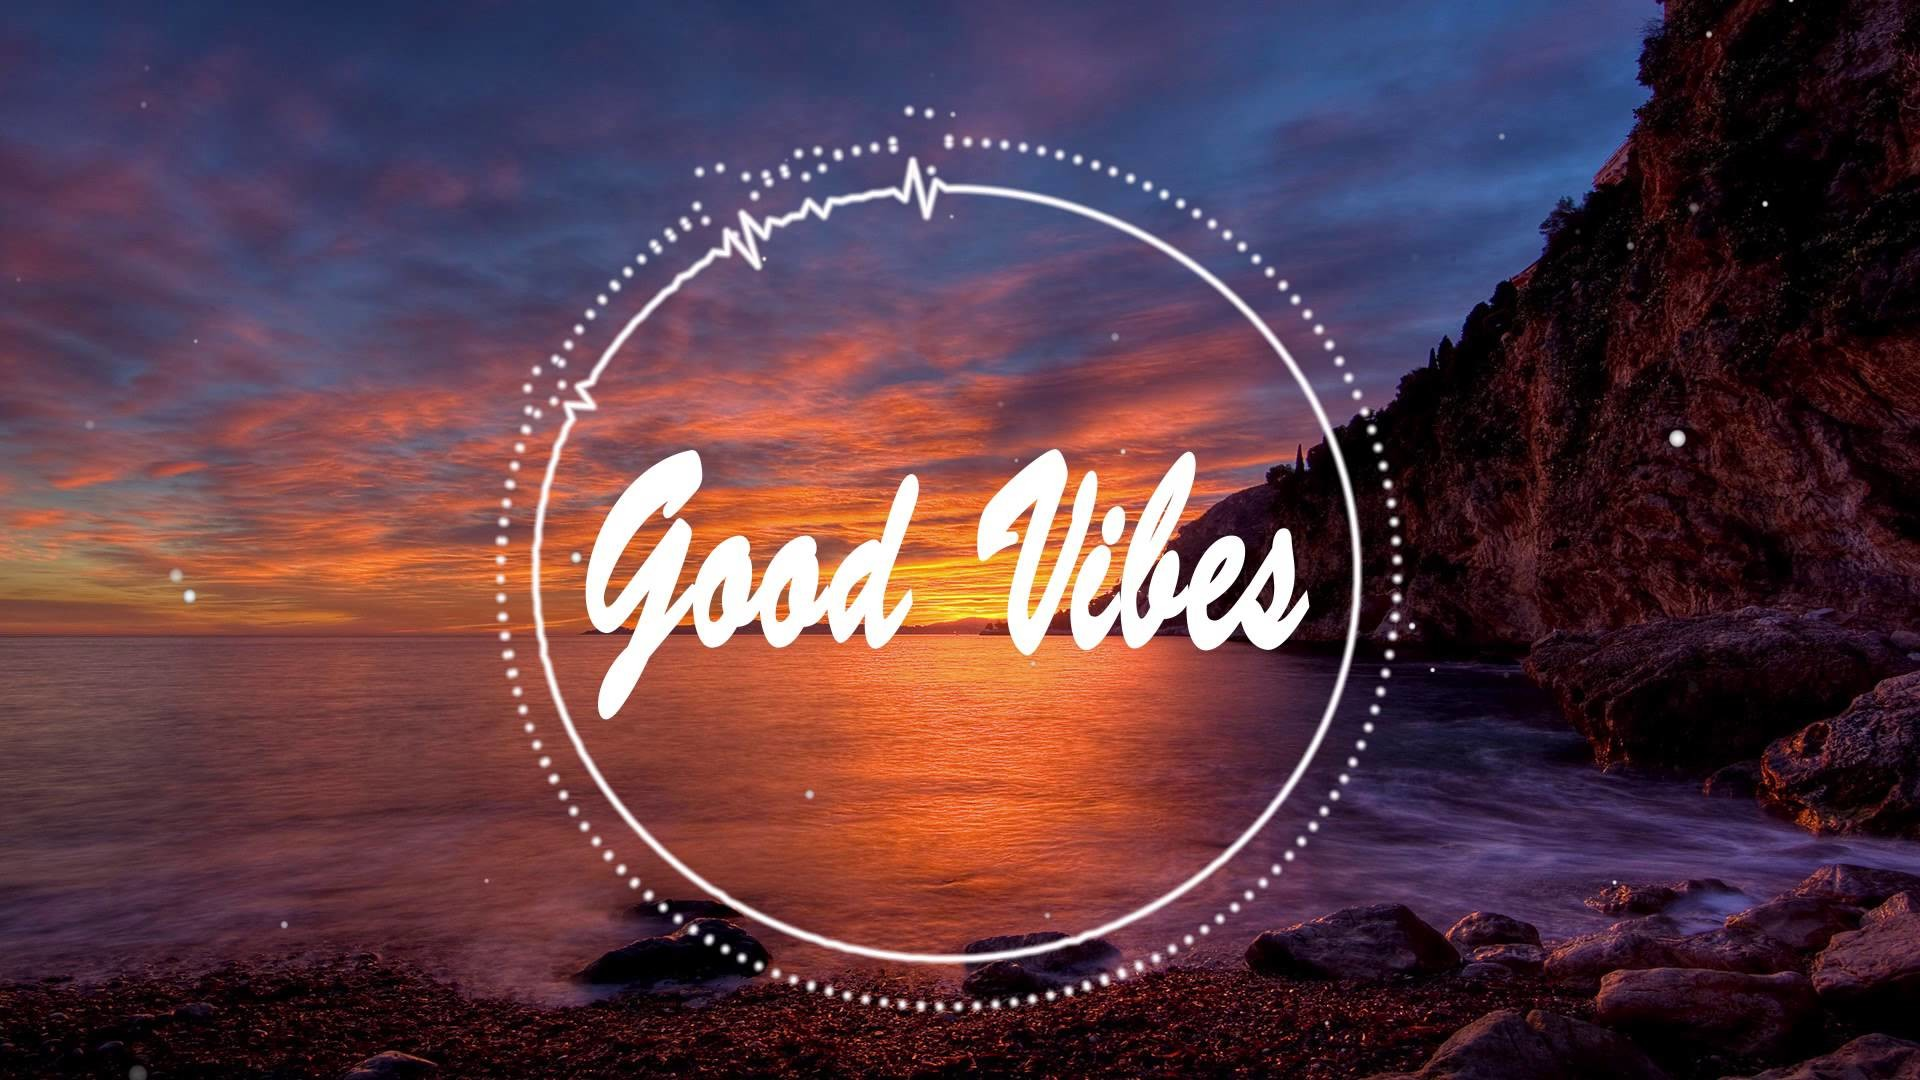 Cute Wallpapers Pinterest Laptop Quote Good Vibes Wallpaper 72 Images